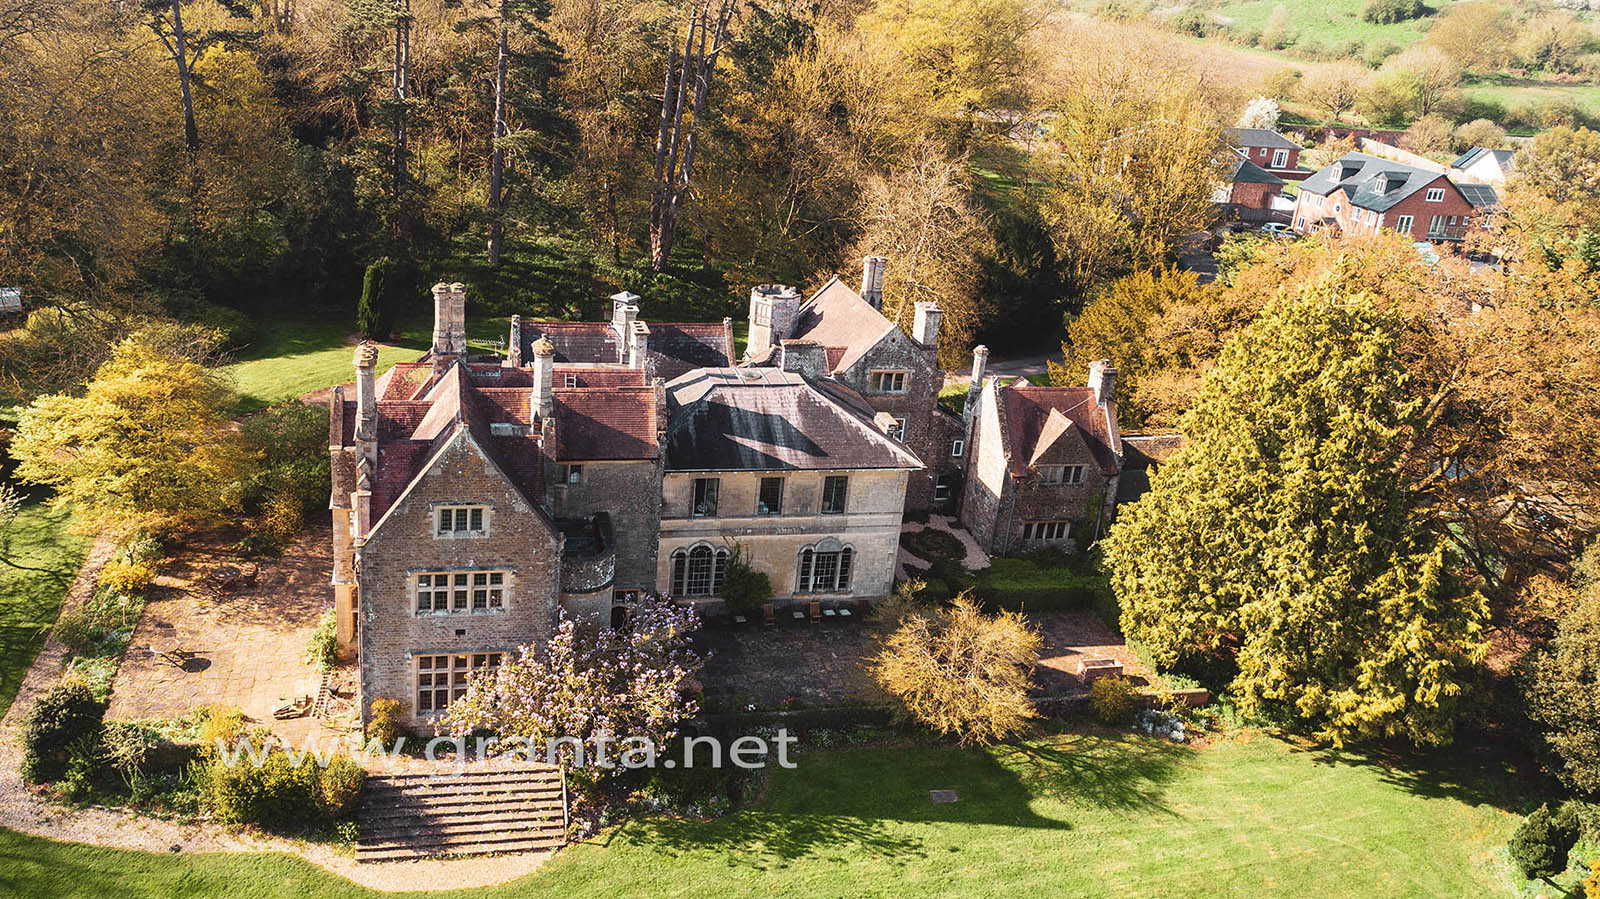 Aerial photo of Cleeve House, near Seend in Wiltshire